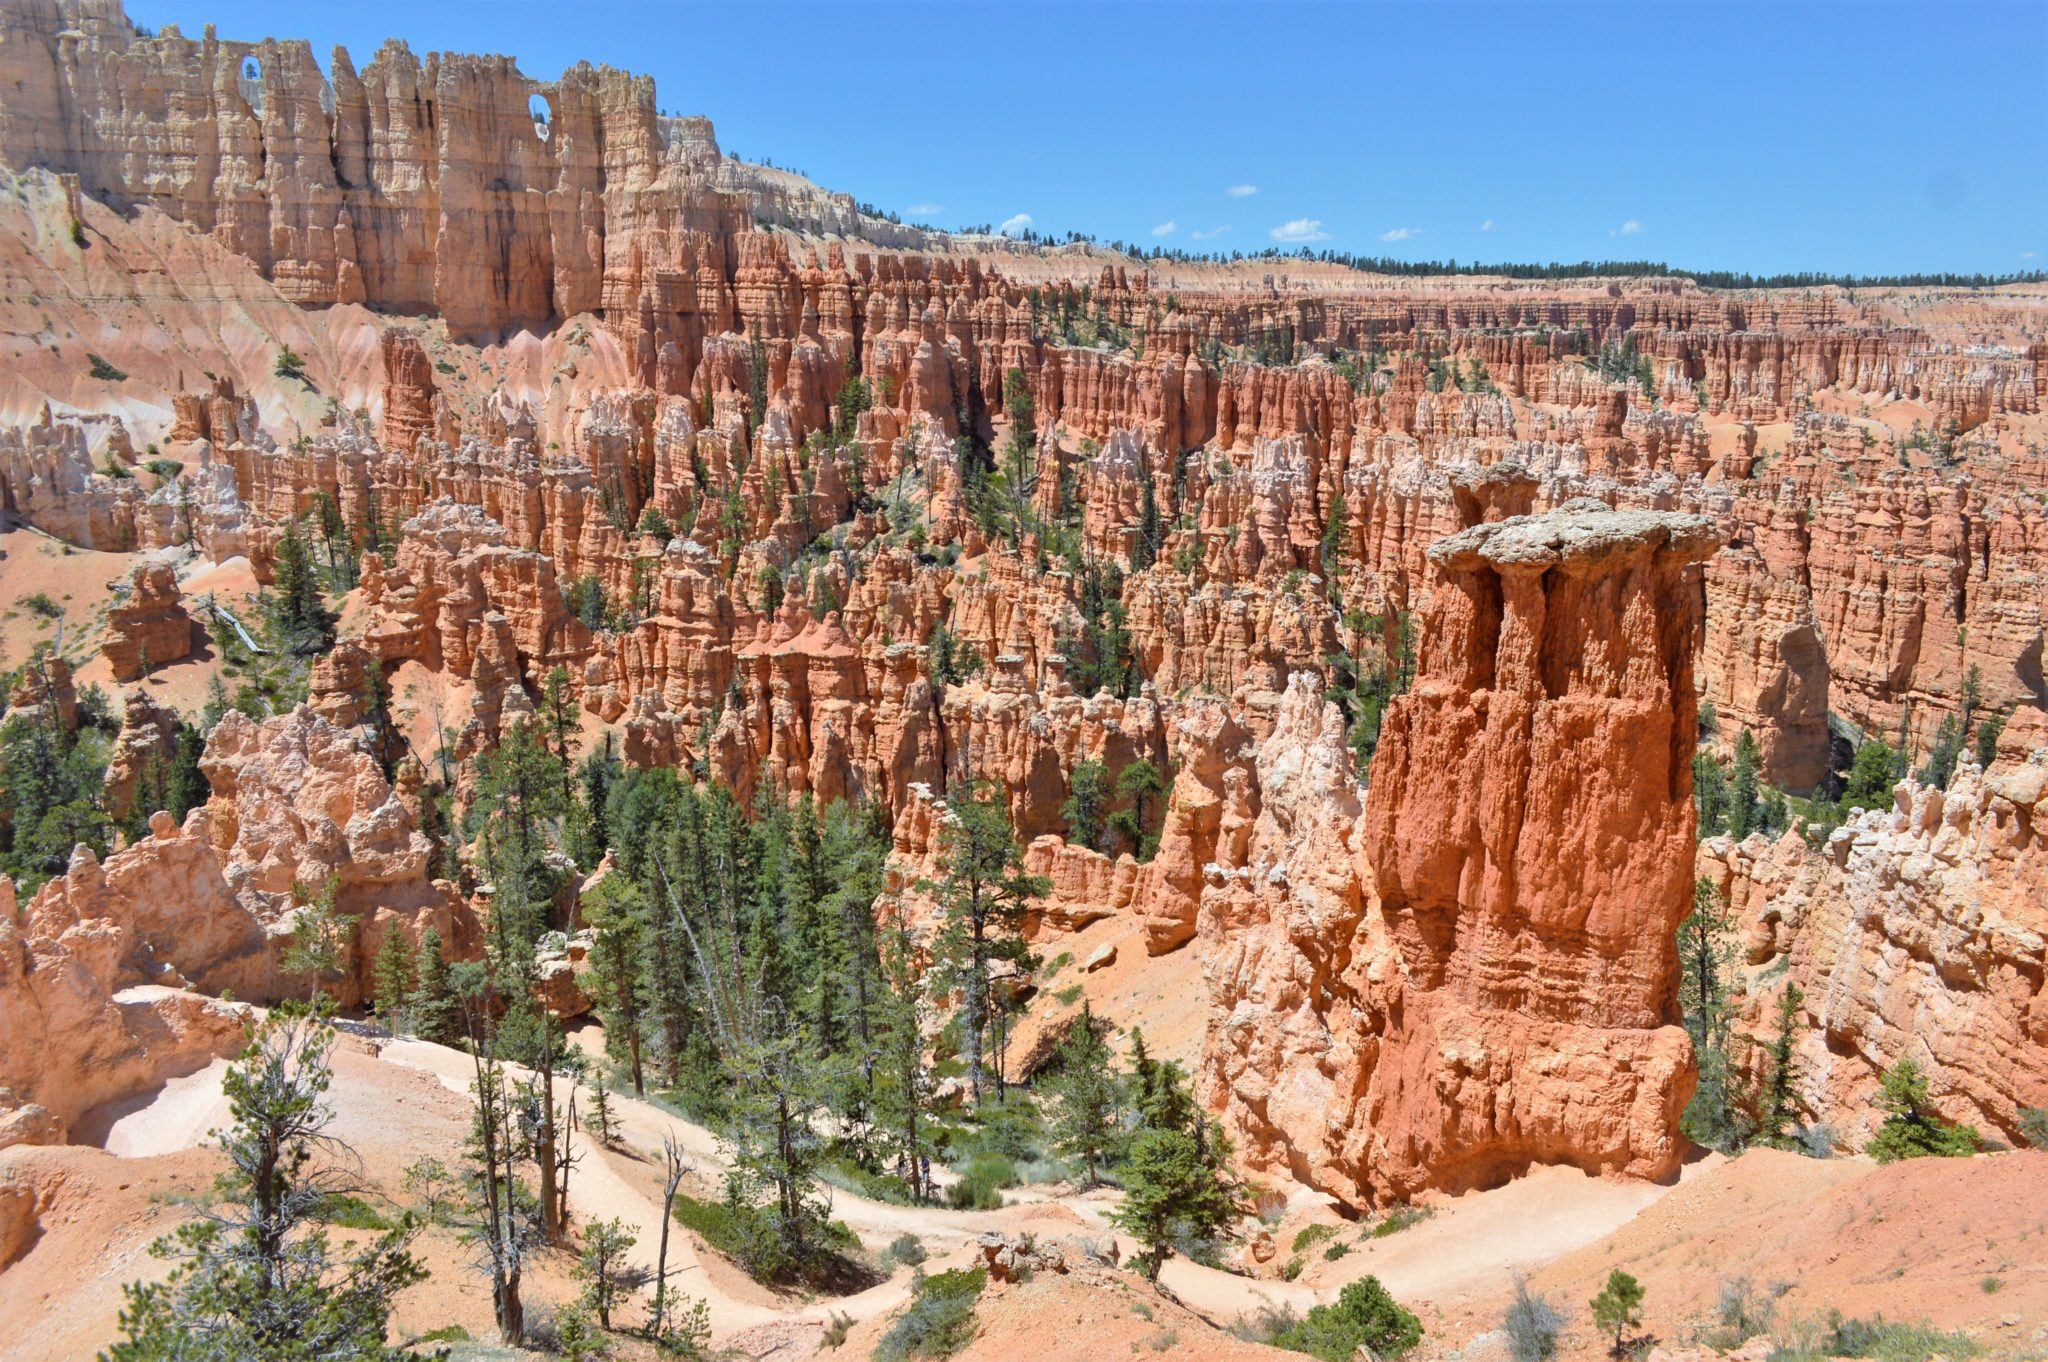 Peek a boo loop trail Bryce Canyon National Park